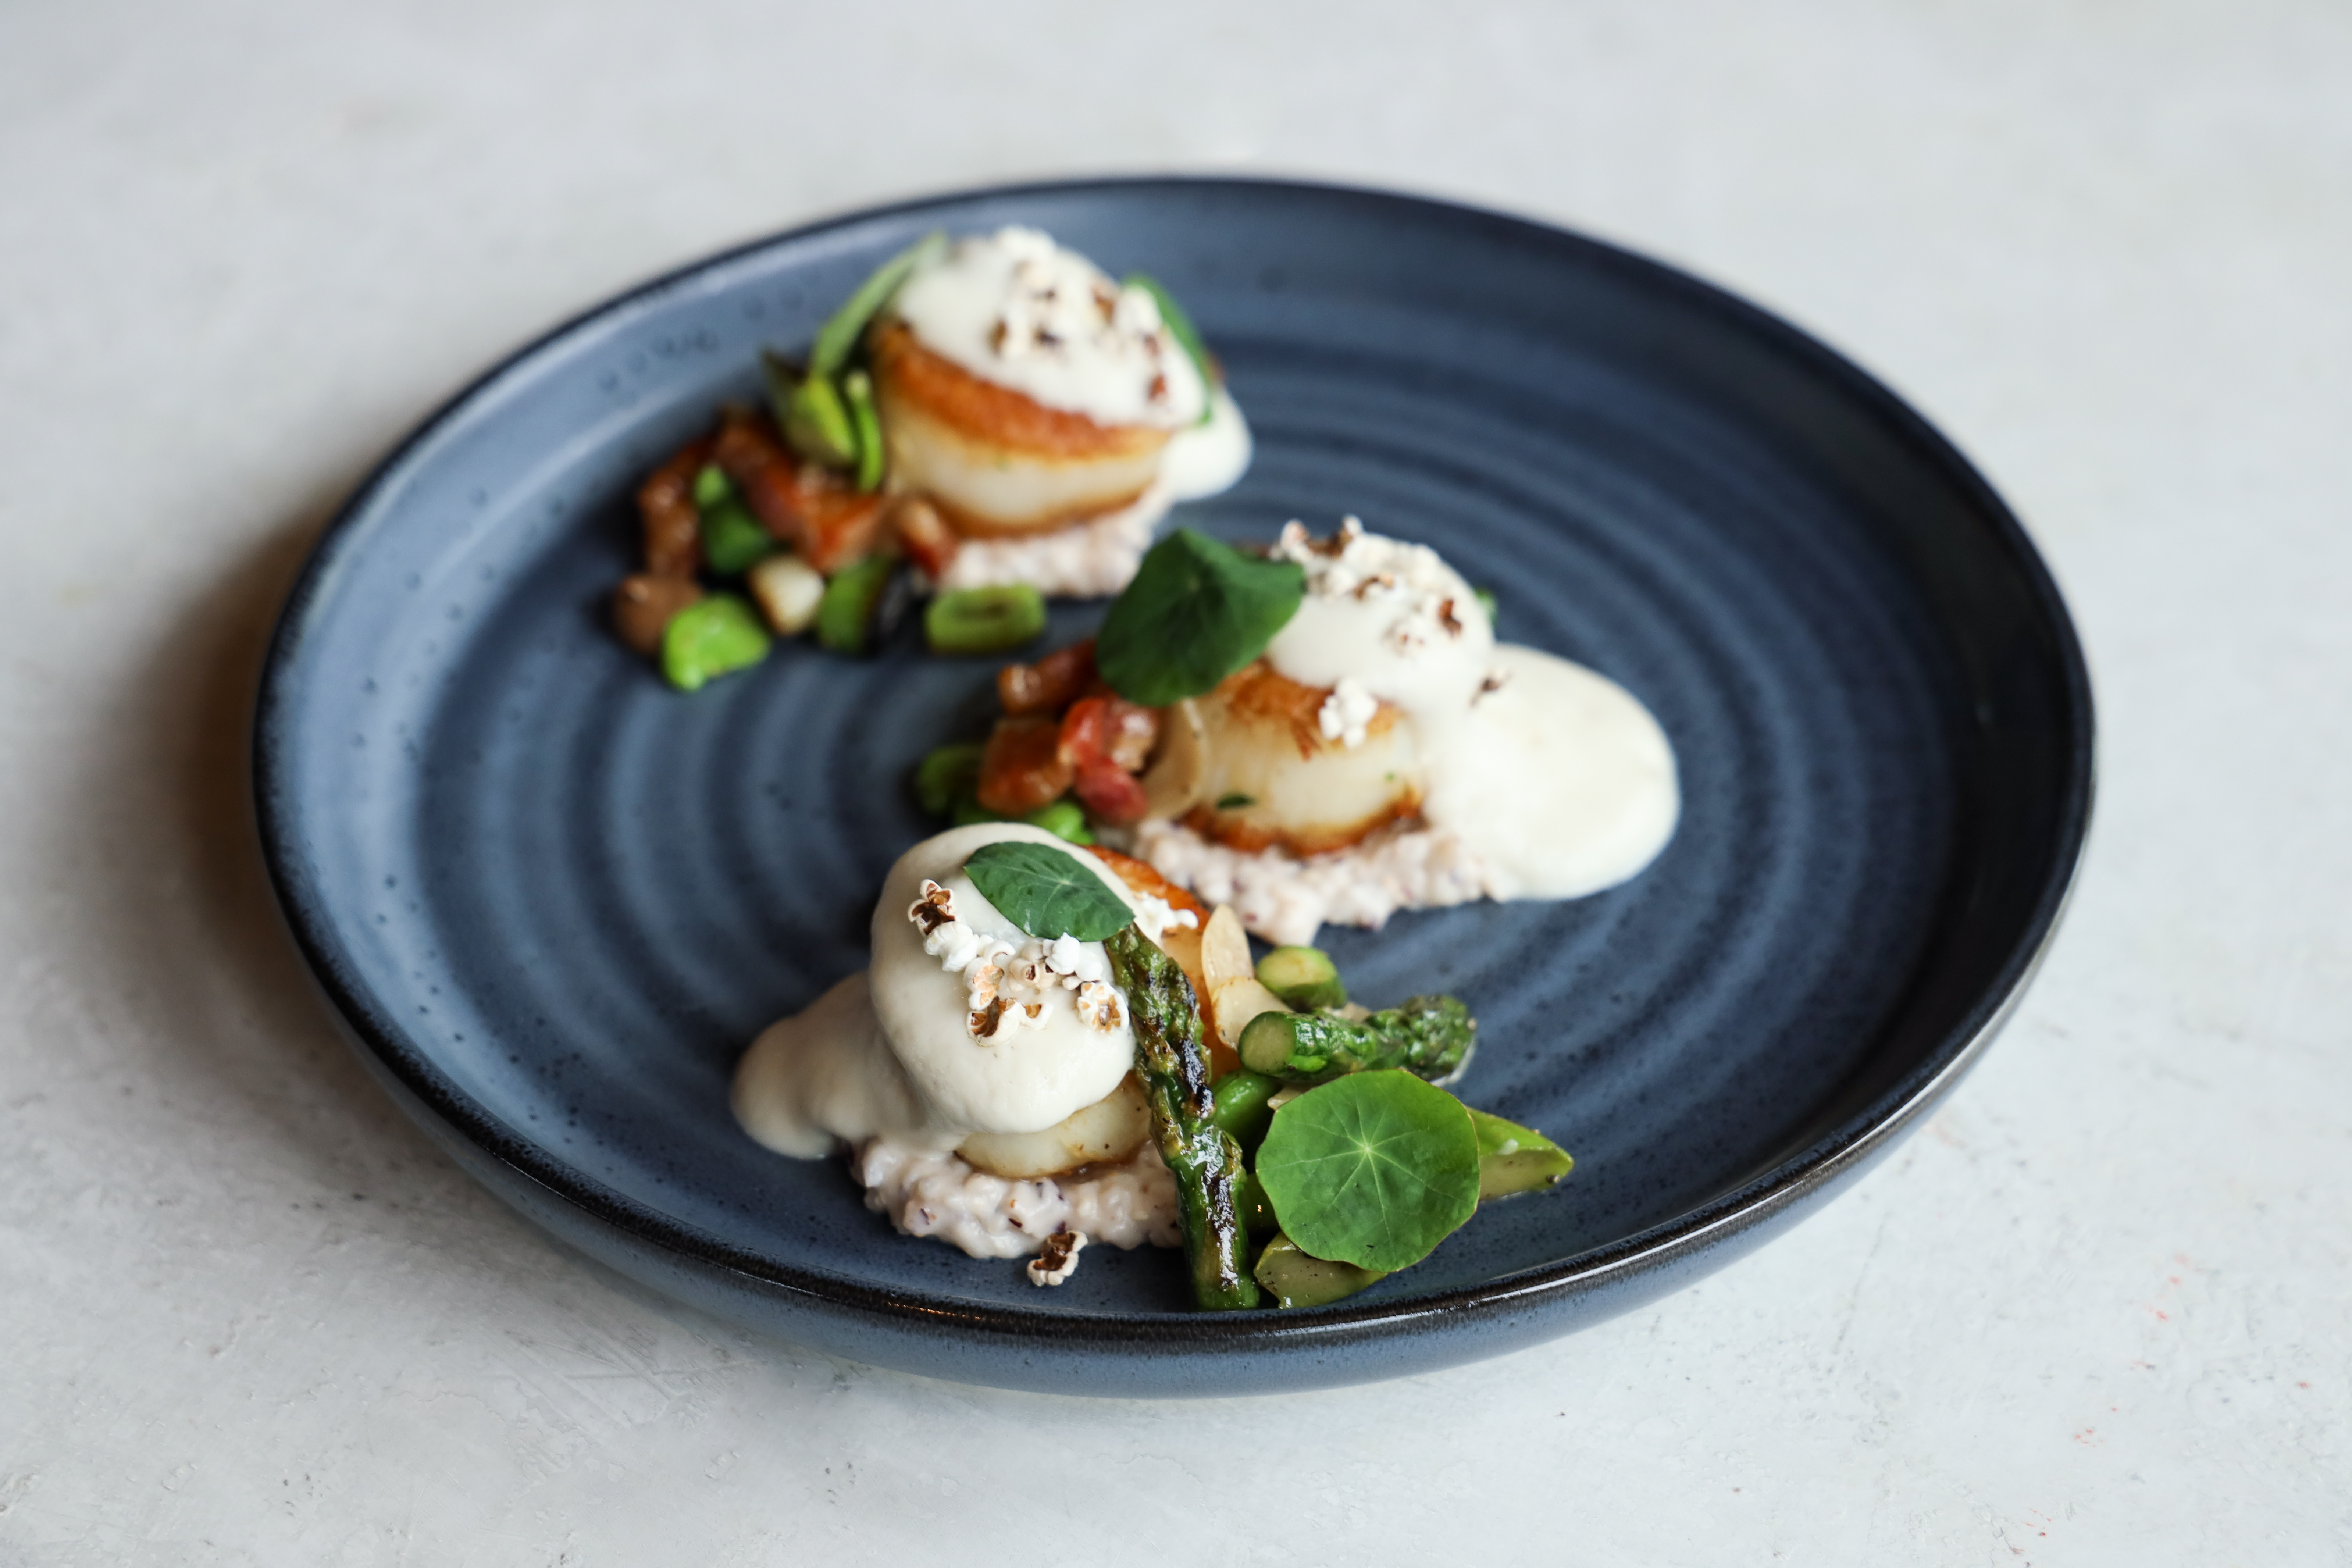 Scallops & Grits:{ }jimmy red corn grits, bacon & cauliflower foam, vegetable hash  (Image: Jennifer Chase)